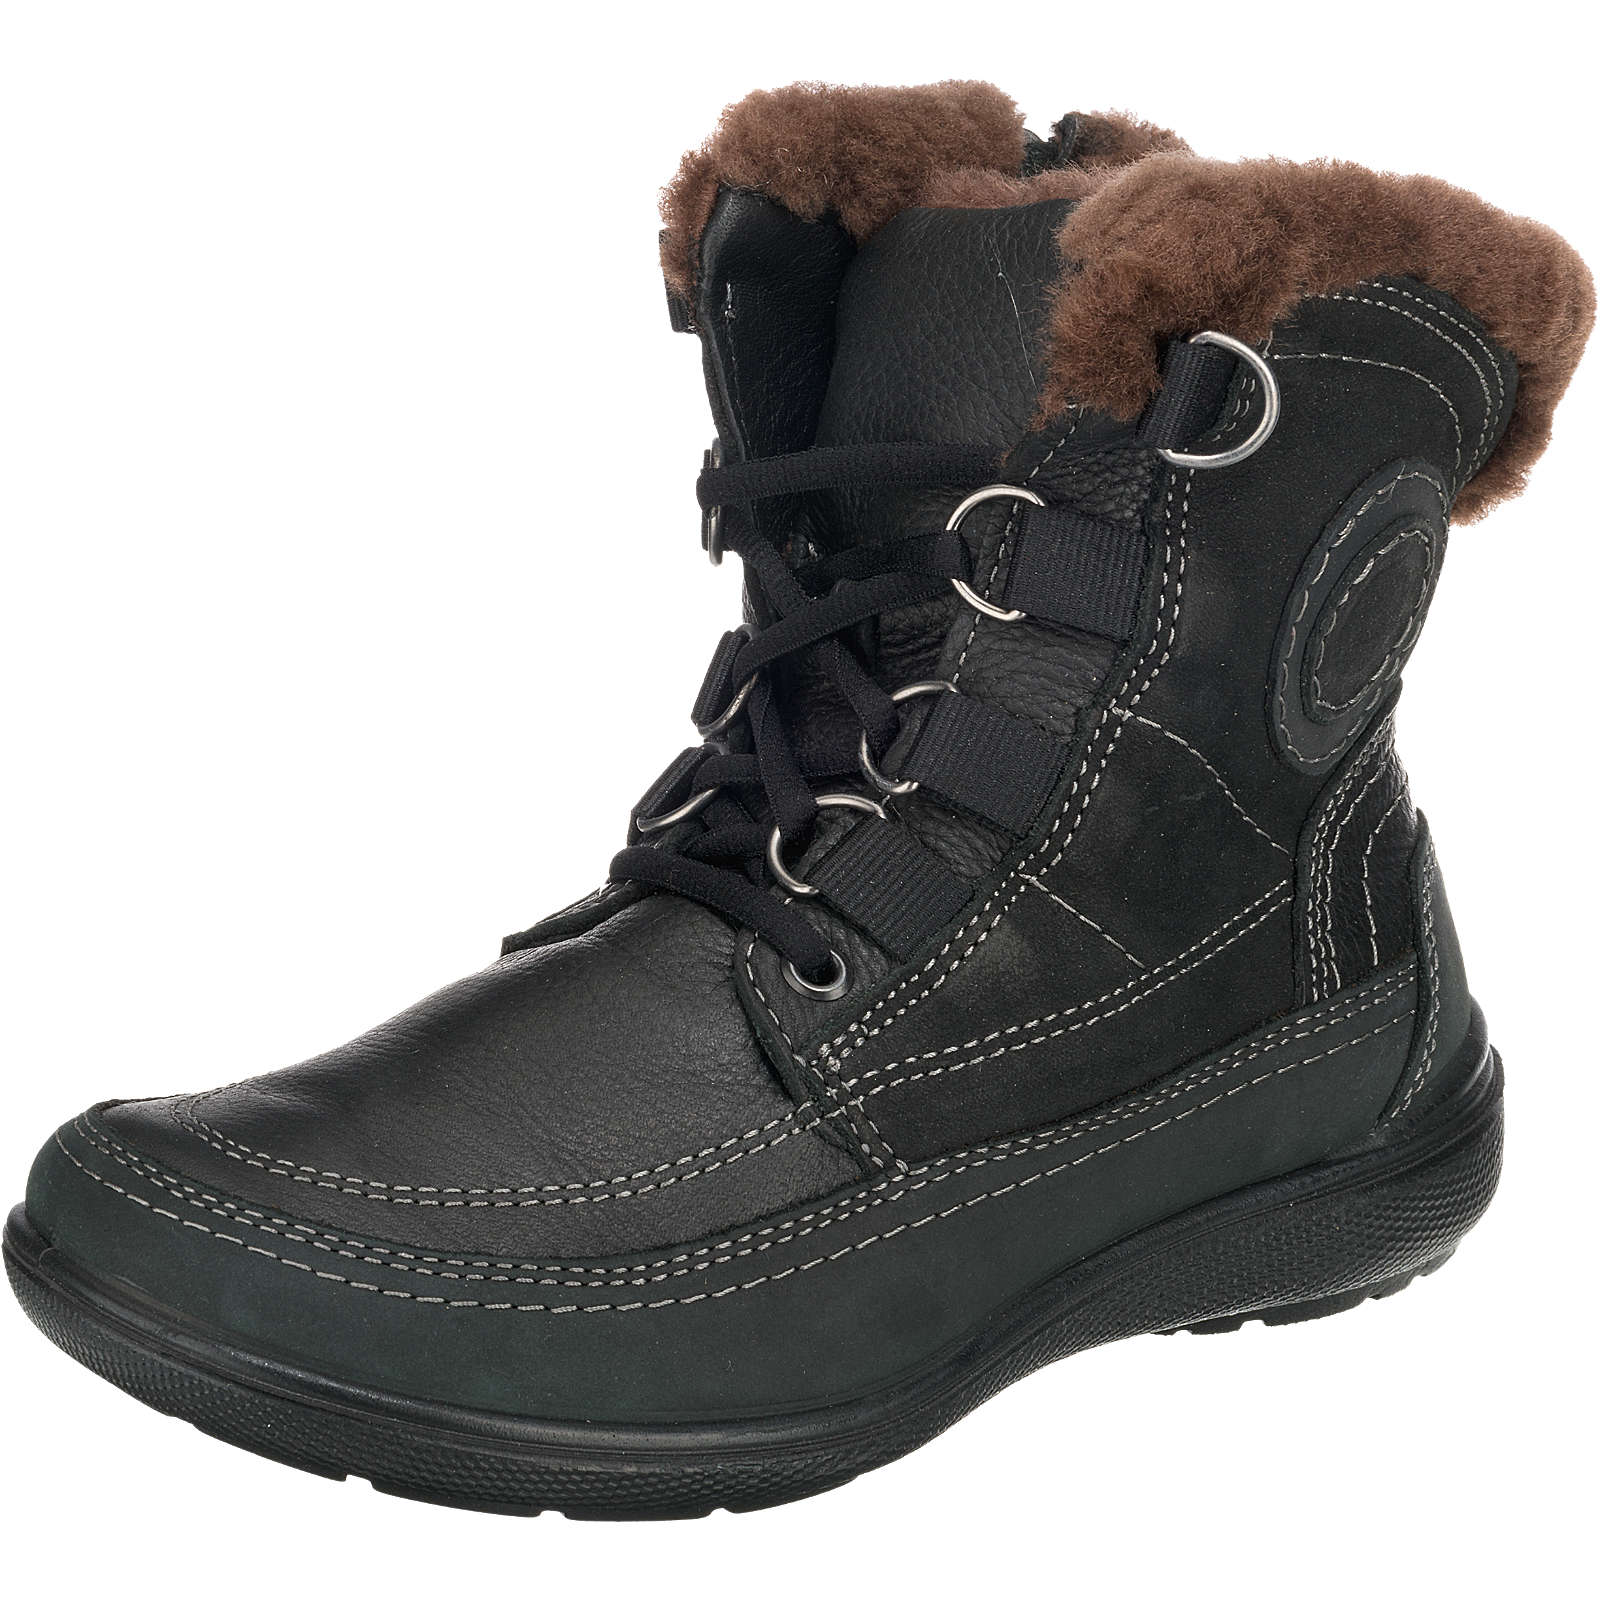 JOMOS Winterstiefel made in Germany schwarz Damen Gr. 37